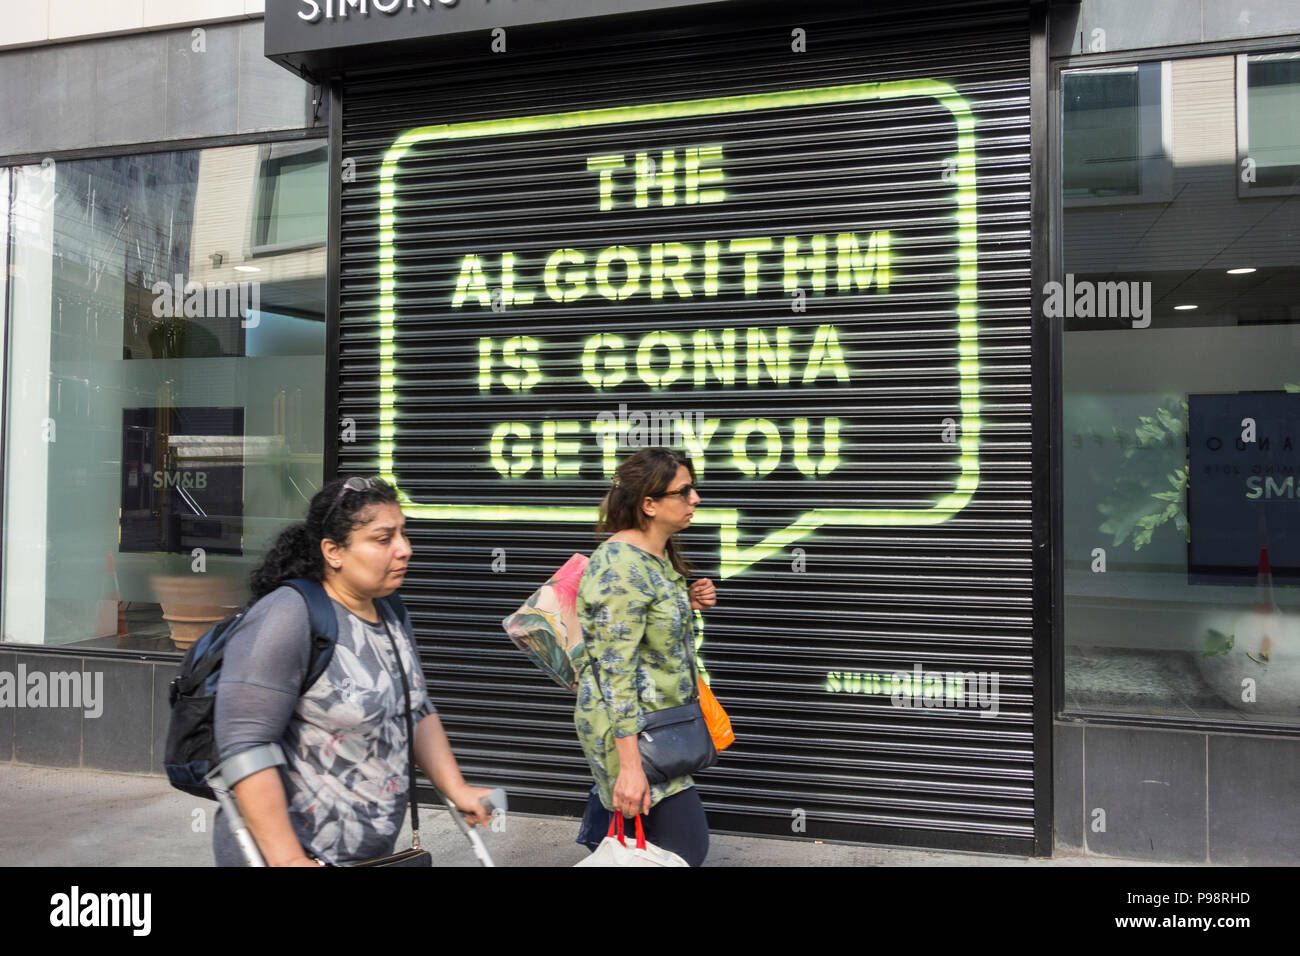 The algorithm is gonna get you by Subdude, opposite Facebook's Rathbone Square HQ in London, U.K. Stock Photo